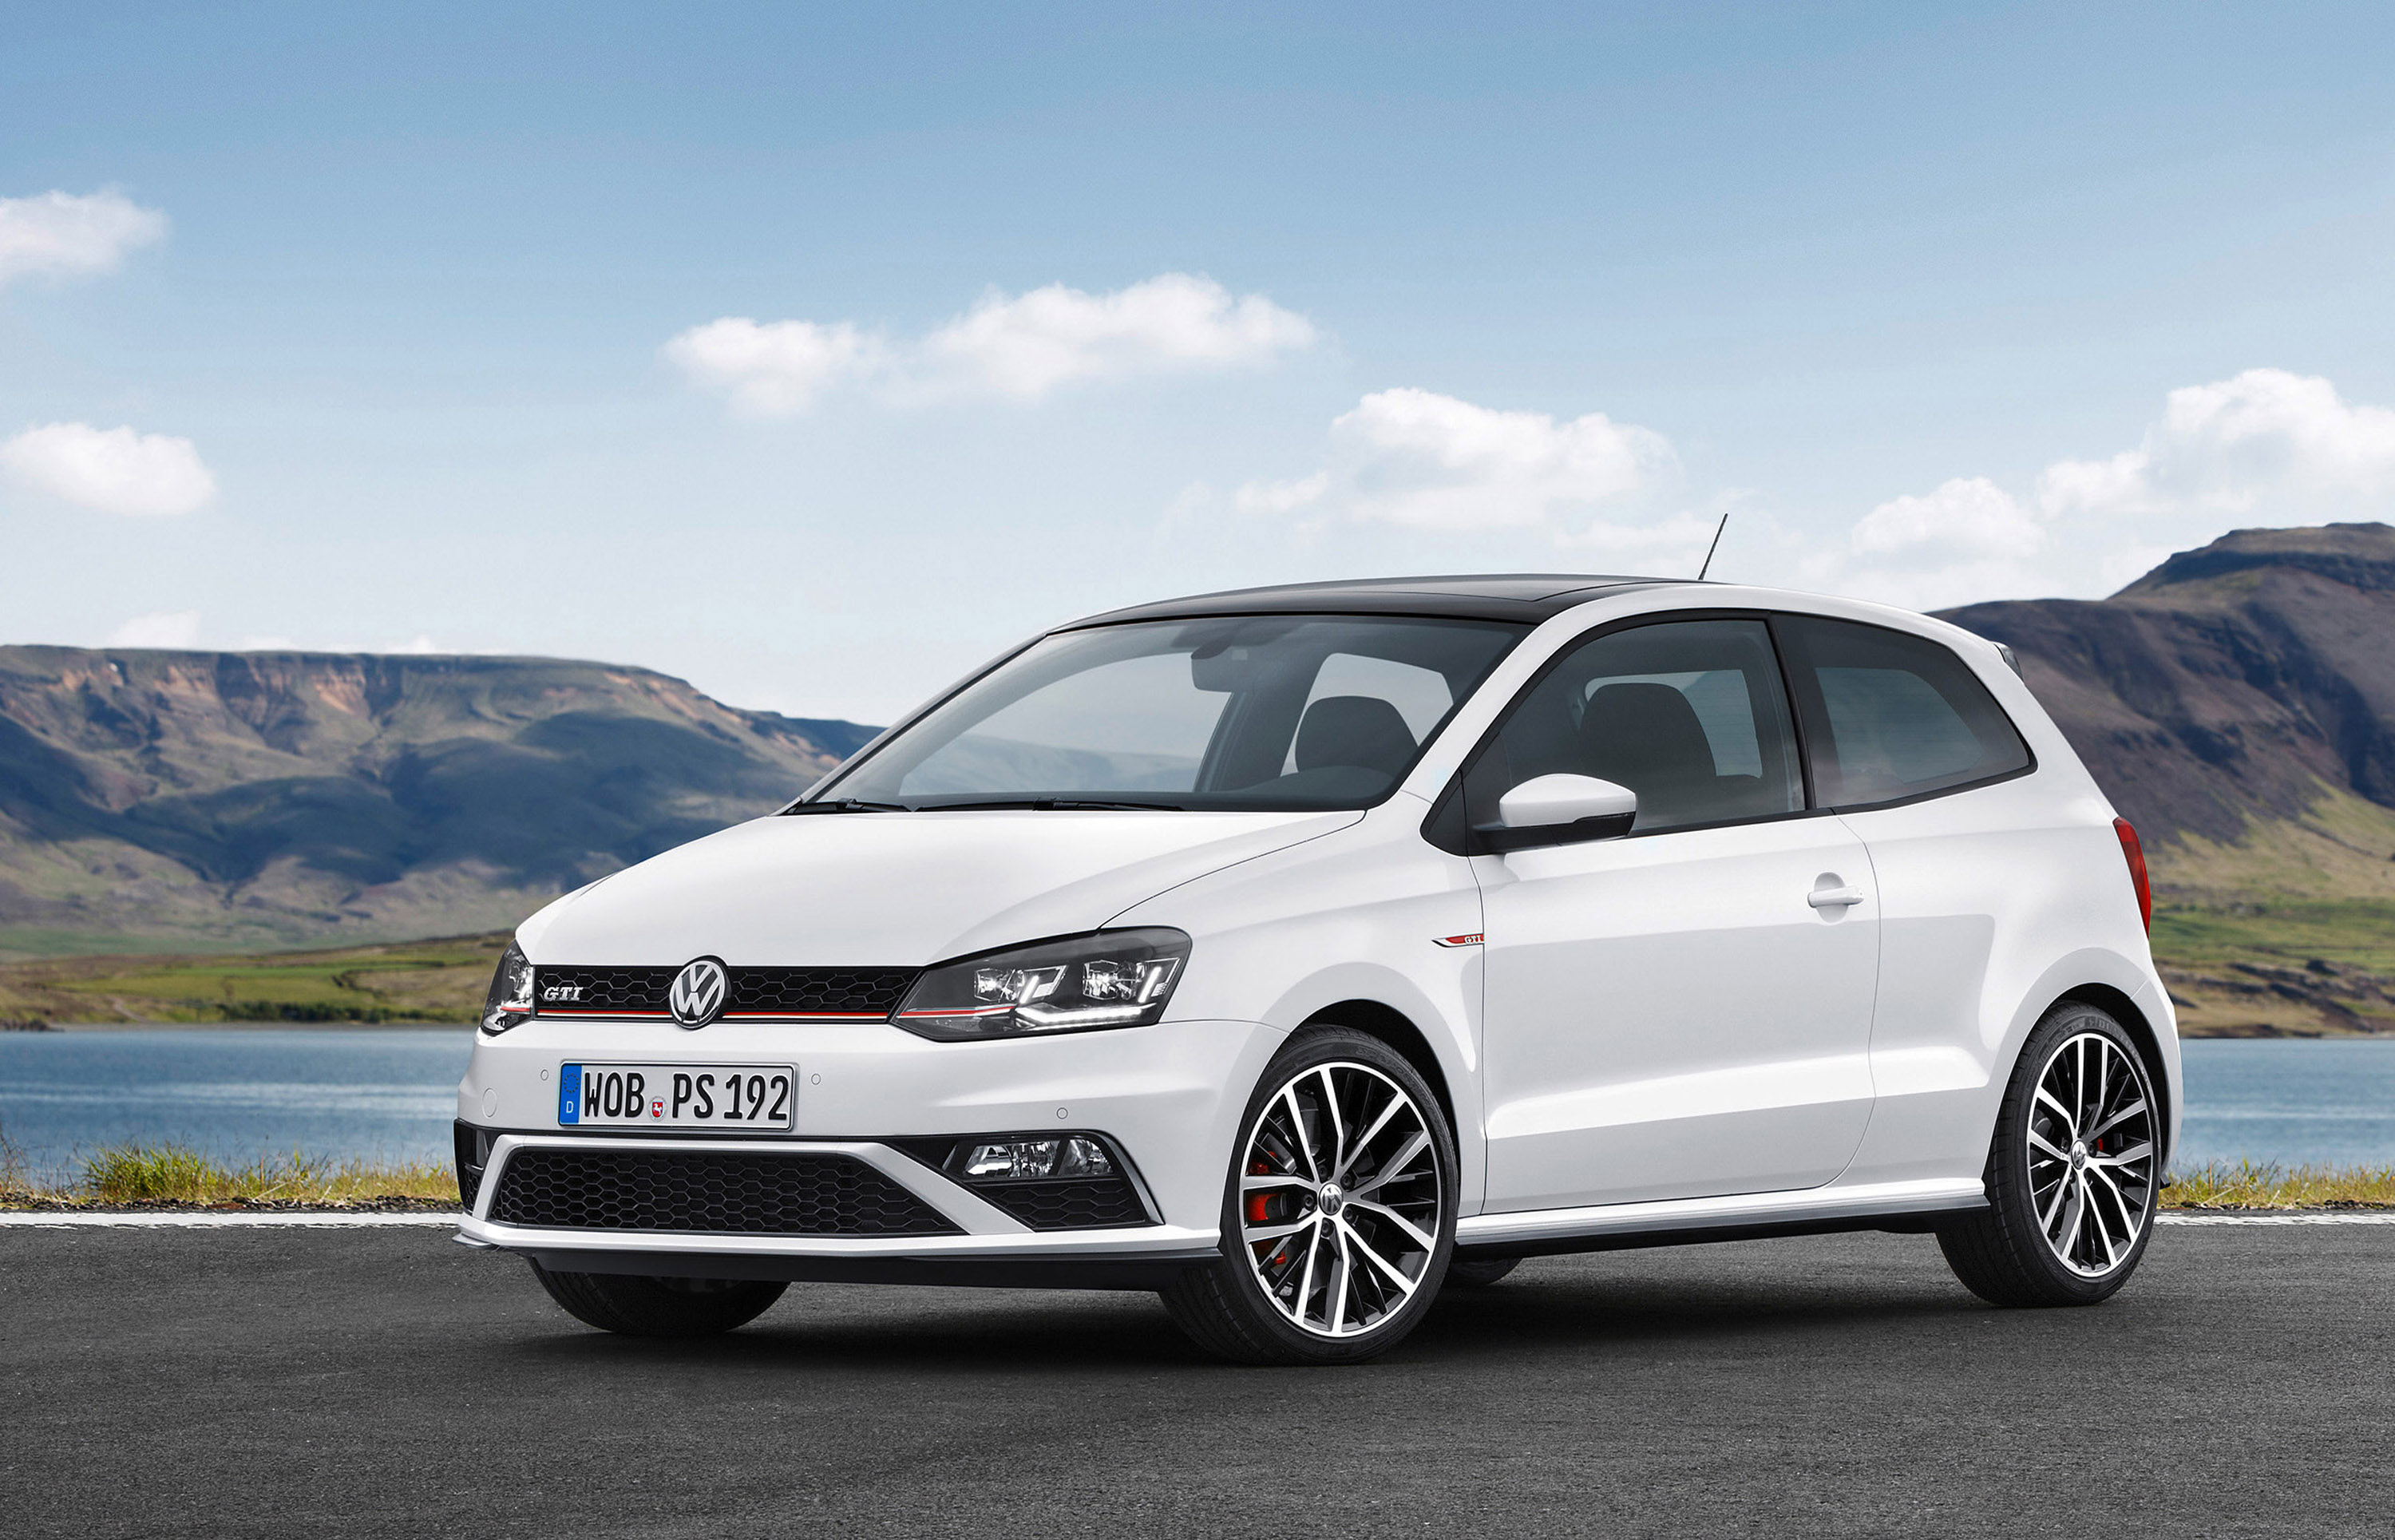 2015 Volkswagen Polo GTI Facelift is Almost as Good as the Polo R WRC